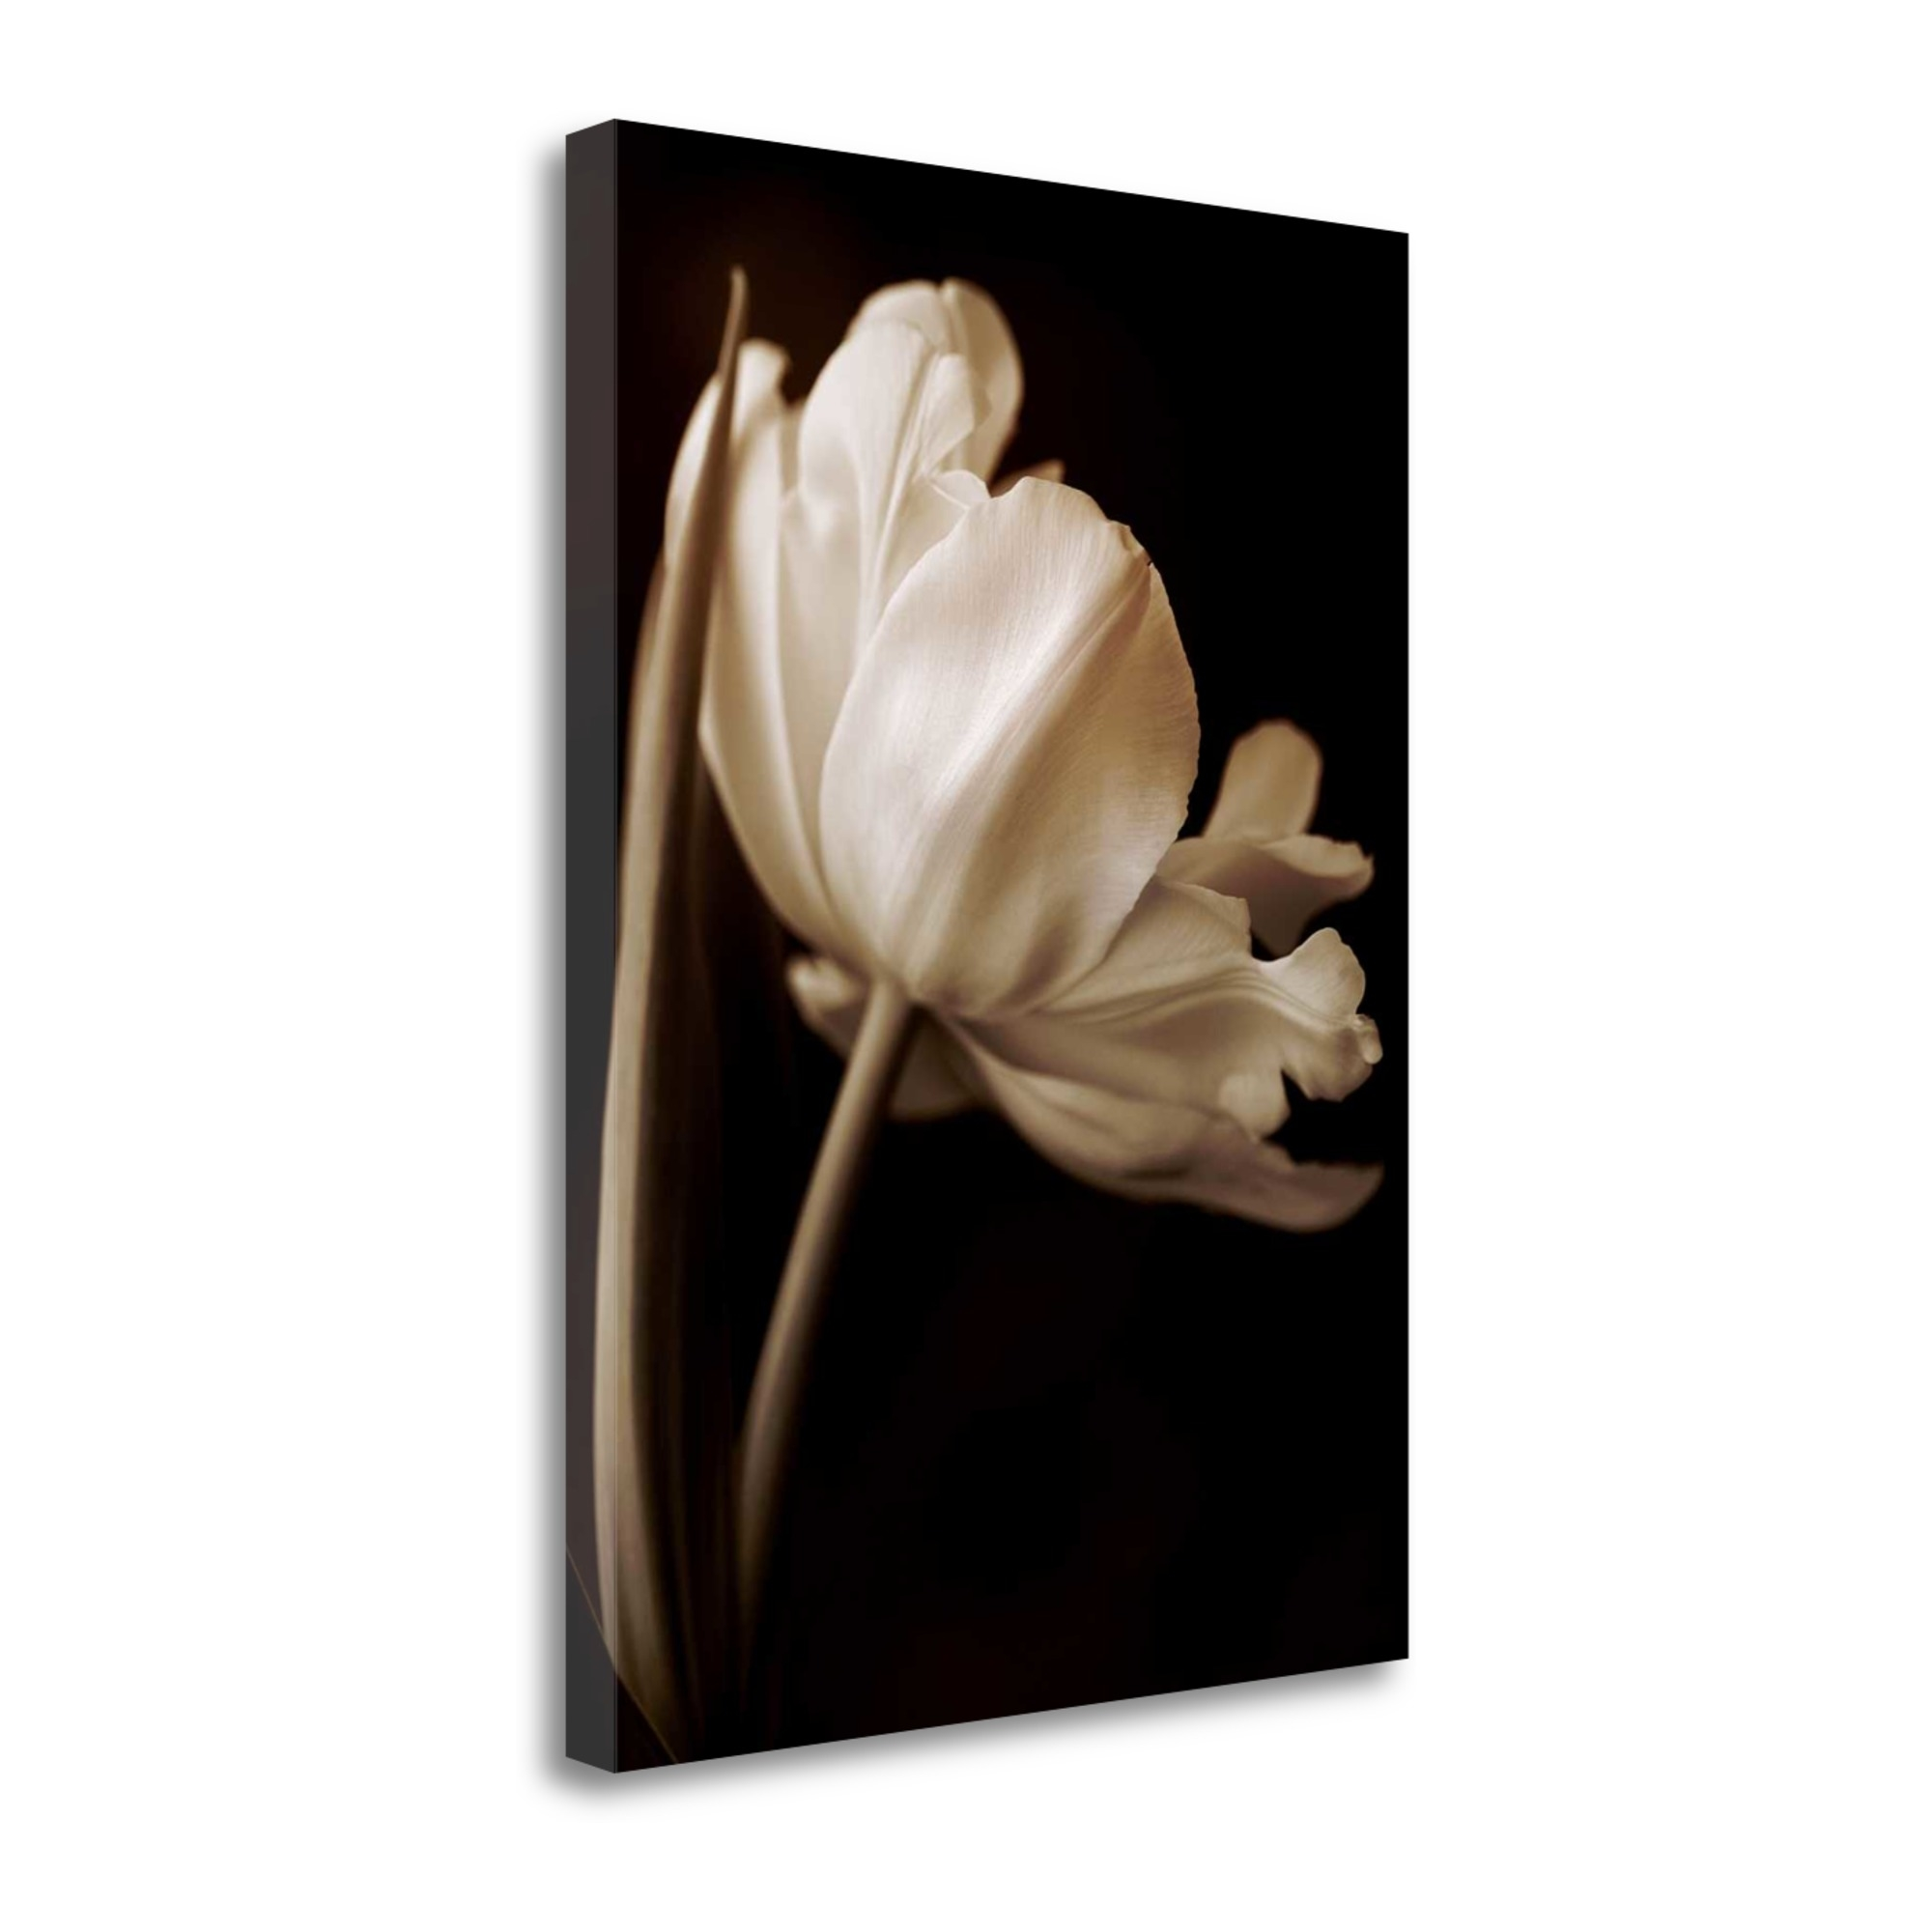 "Champagne Tulip I By Charles Britt, 28"" x 38\"" Fine Art Giclee Print on Gallery Wrap Canvas, Ready to Hang"